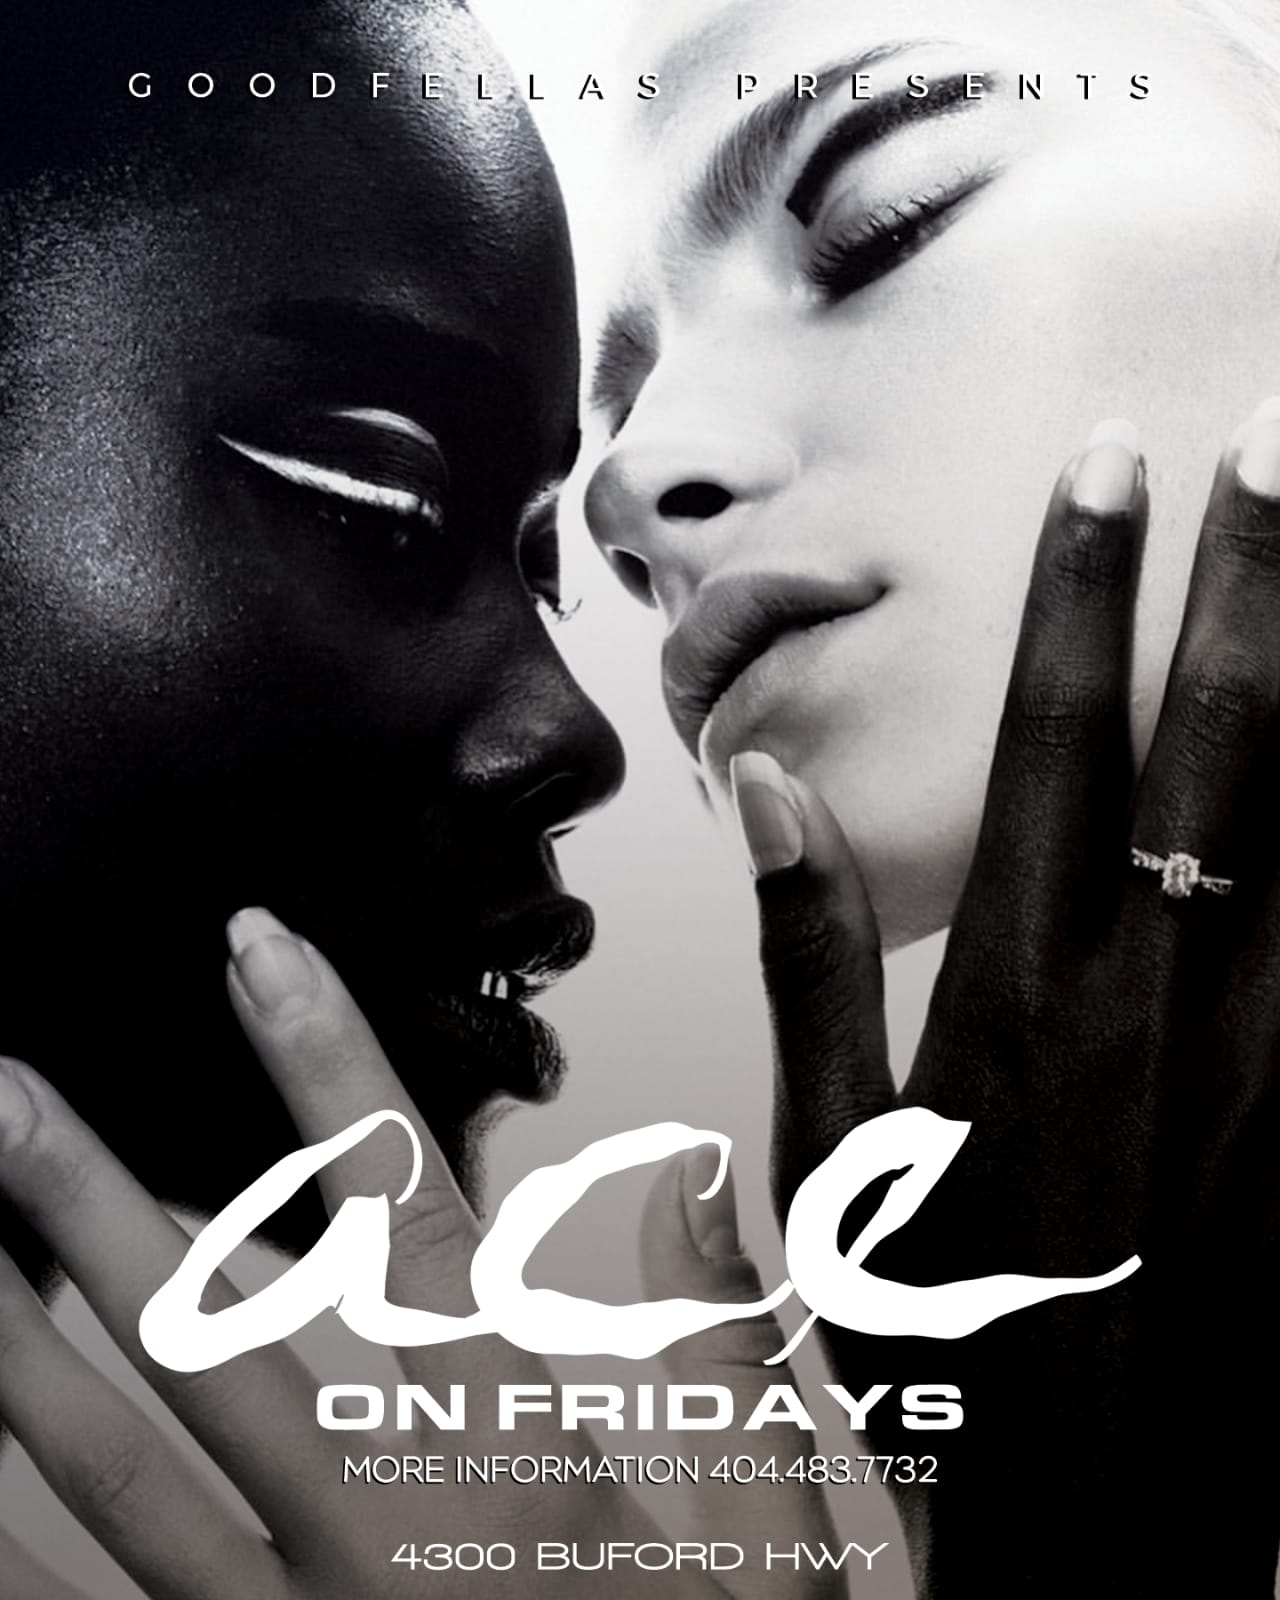 ACE ON FRIDAYS